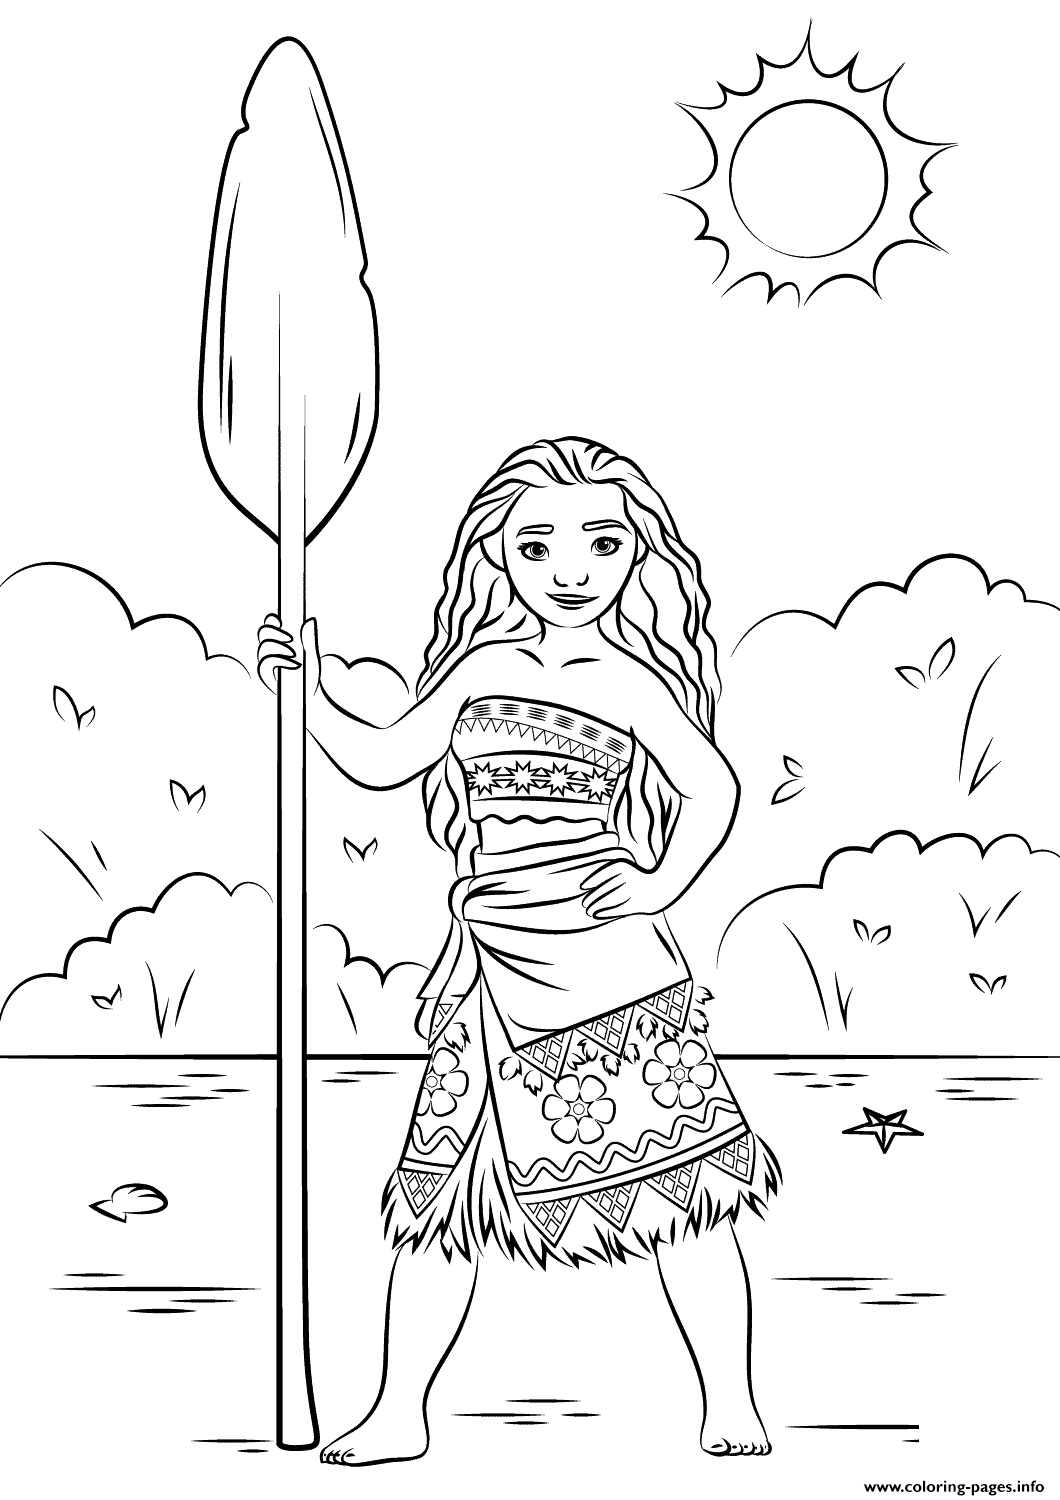 graphic relating to Free Printable Moana Coloring Pages named 24 Disney Moana Coloring Webpages Collections Free of charge COLORING